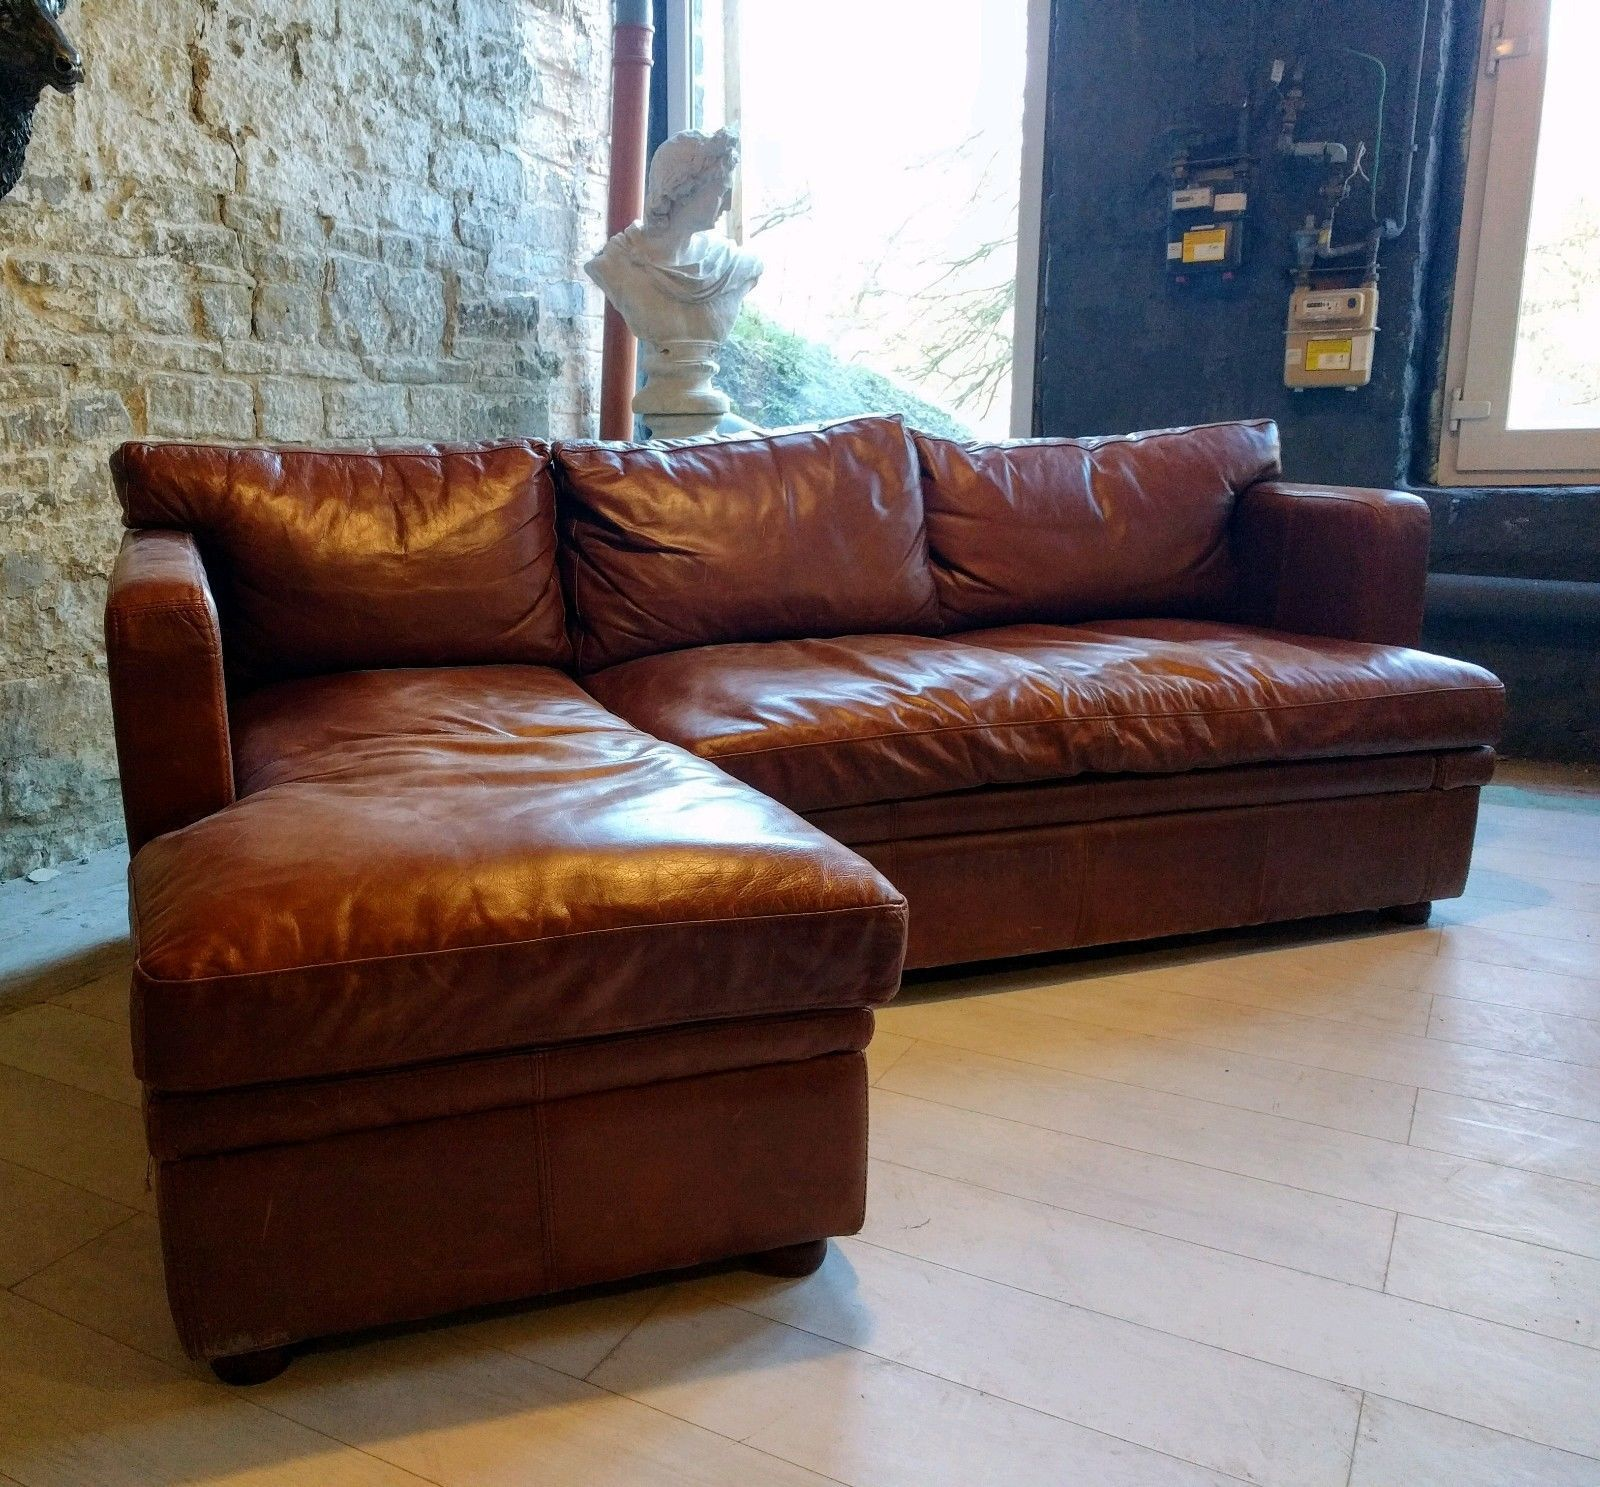 Best 353 Chesterfield Leather Tan Vintage Distressed Cigar 640 x 480